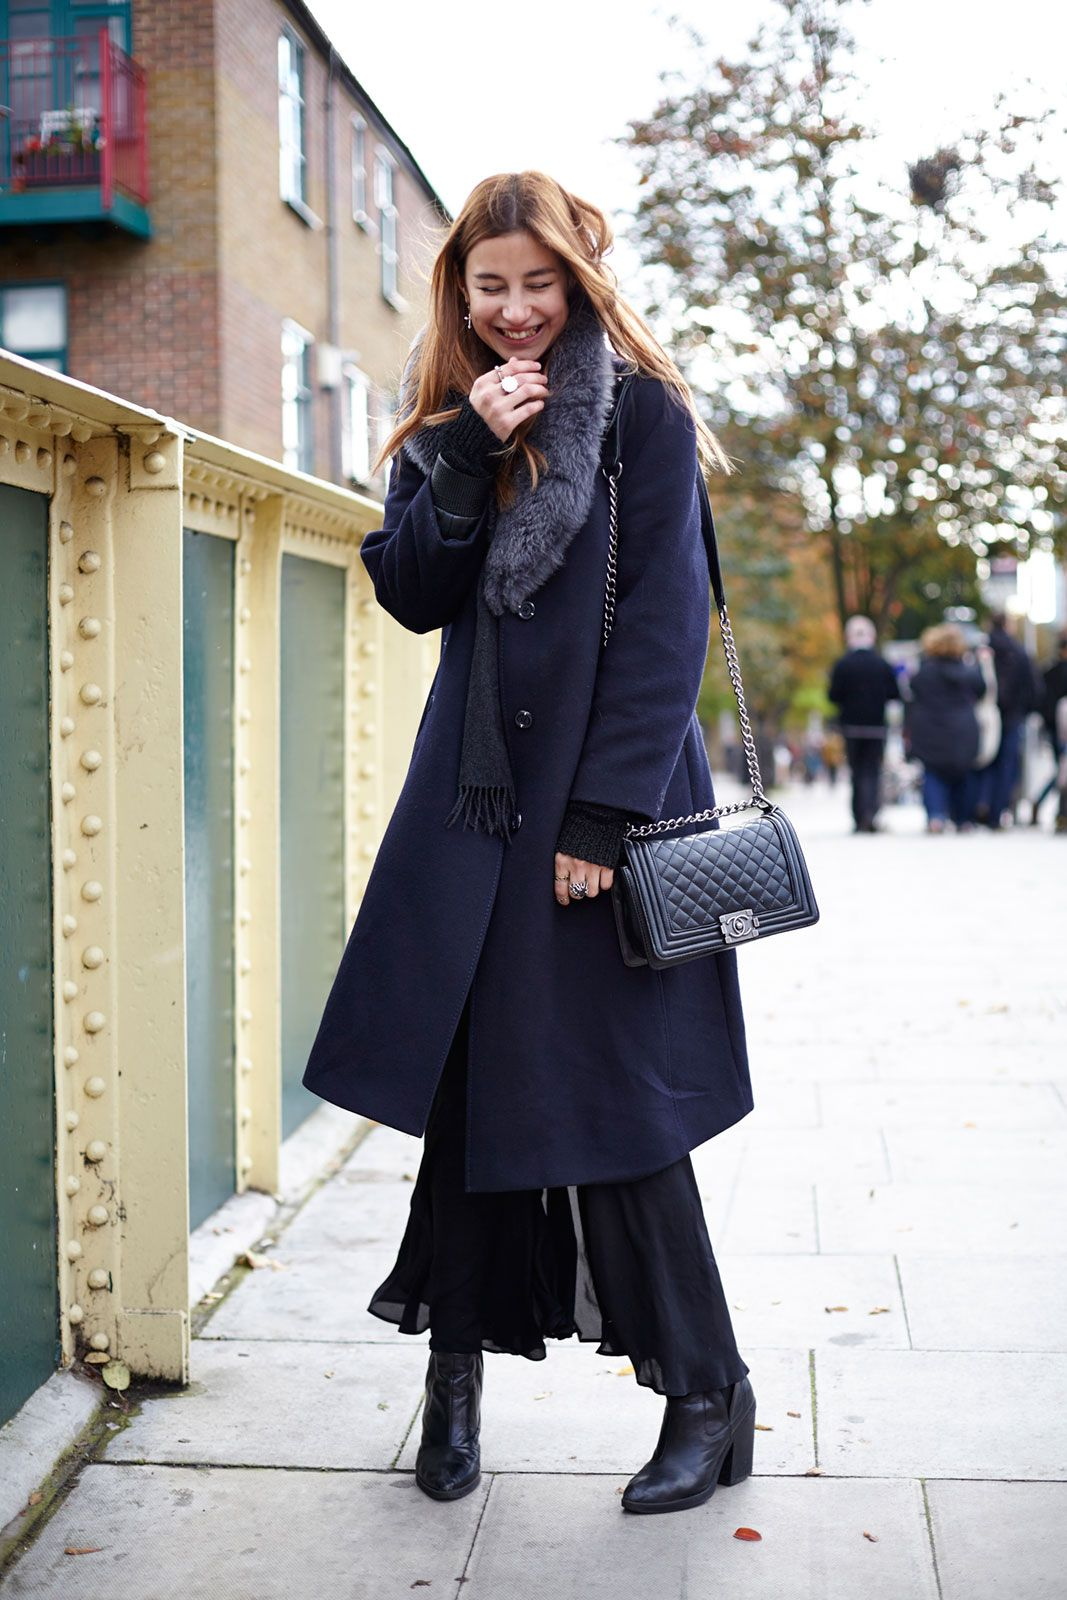 Style street ideas for cold weather pictures